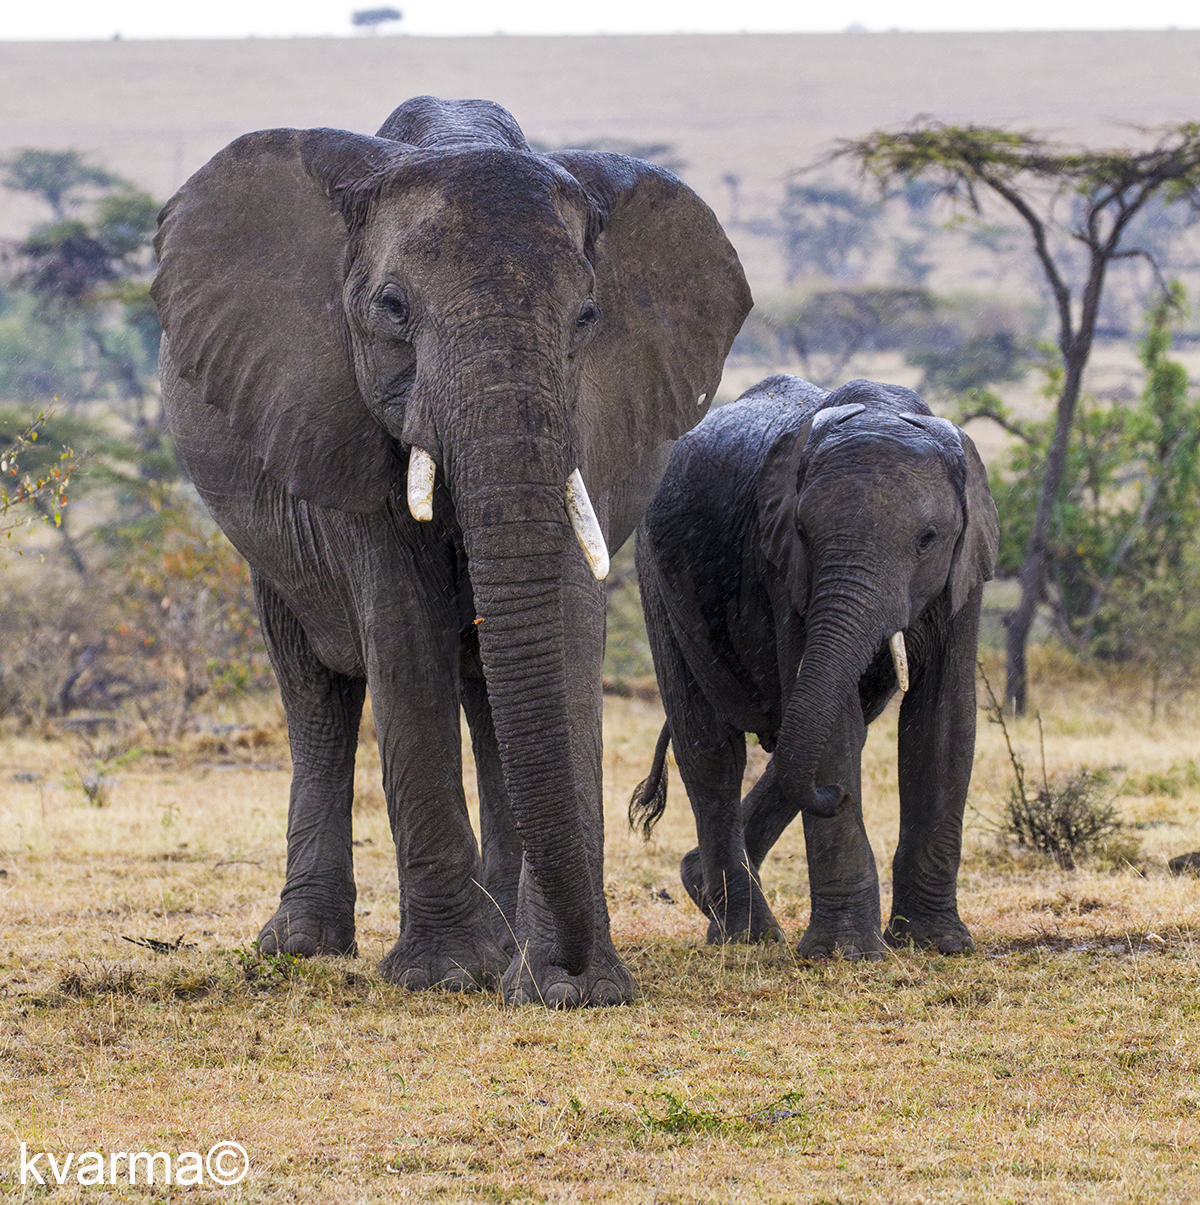 African elephants by Kamal Varma ©